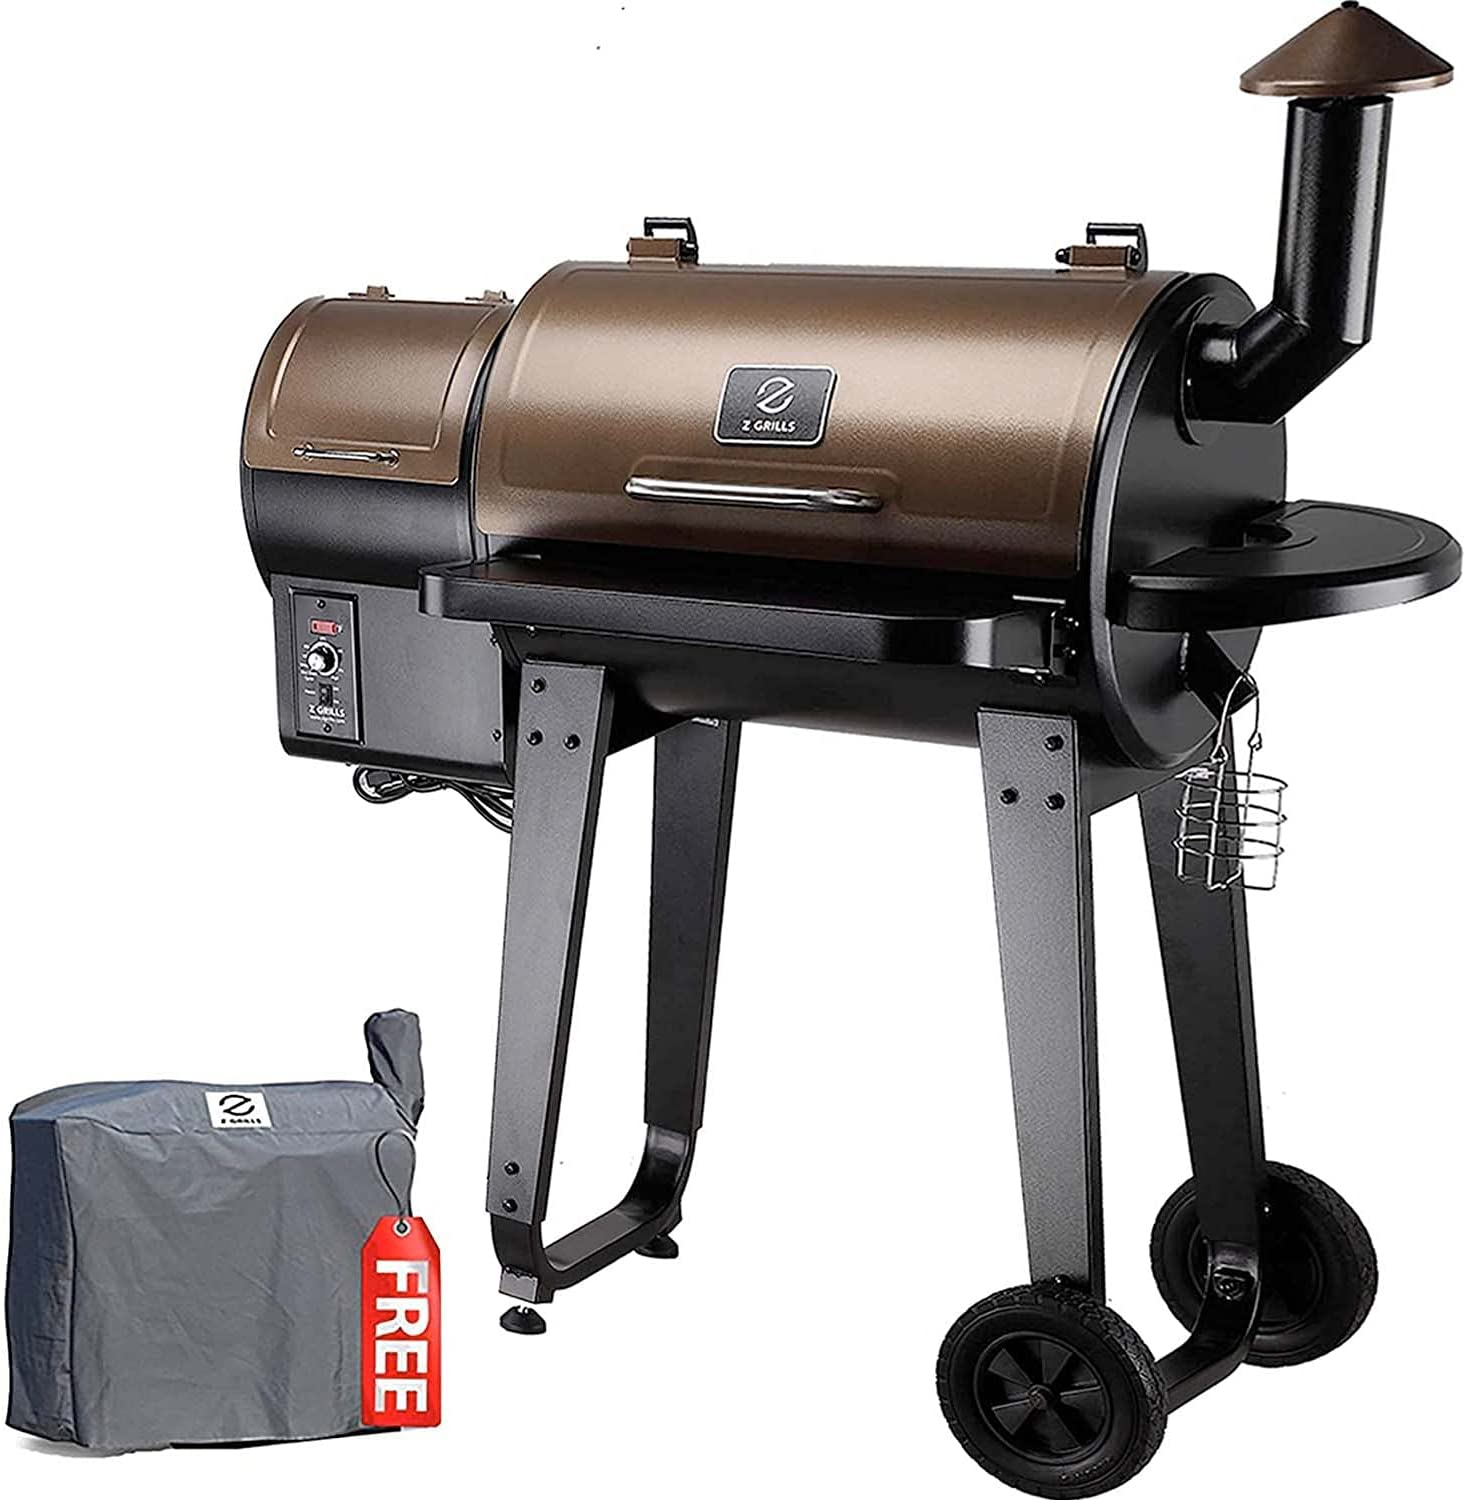 best 6 in 1 Z GRILLS ZPG-450A 2020 Wood Pellet Grill & Smoker, Auto Temperature Control BBQ Grill combo